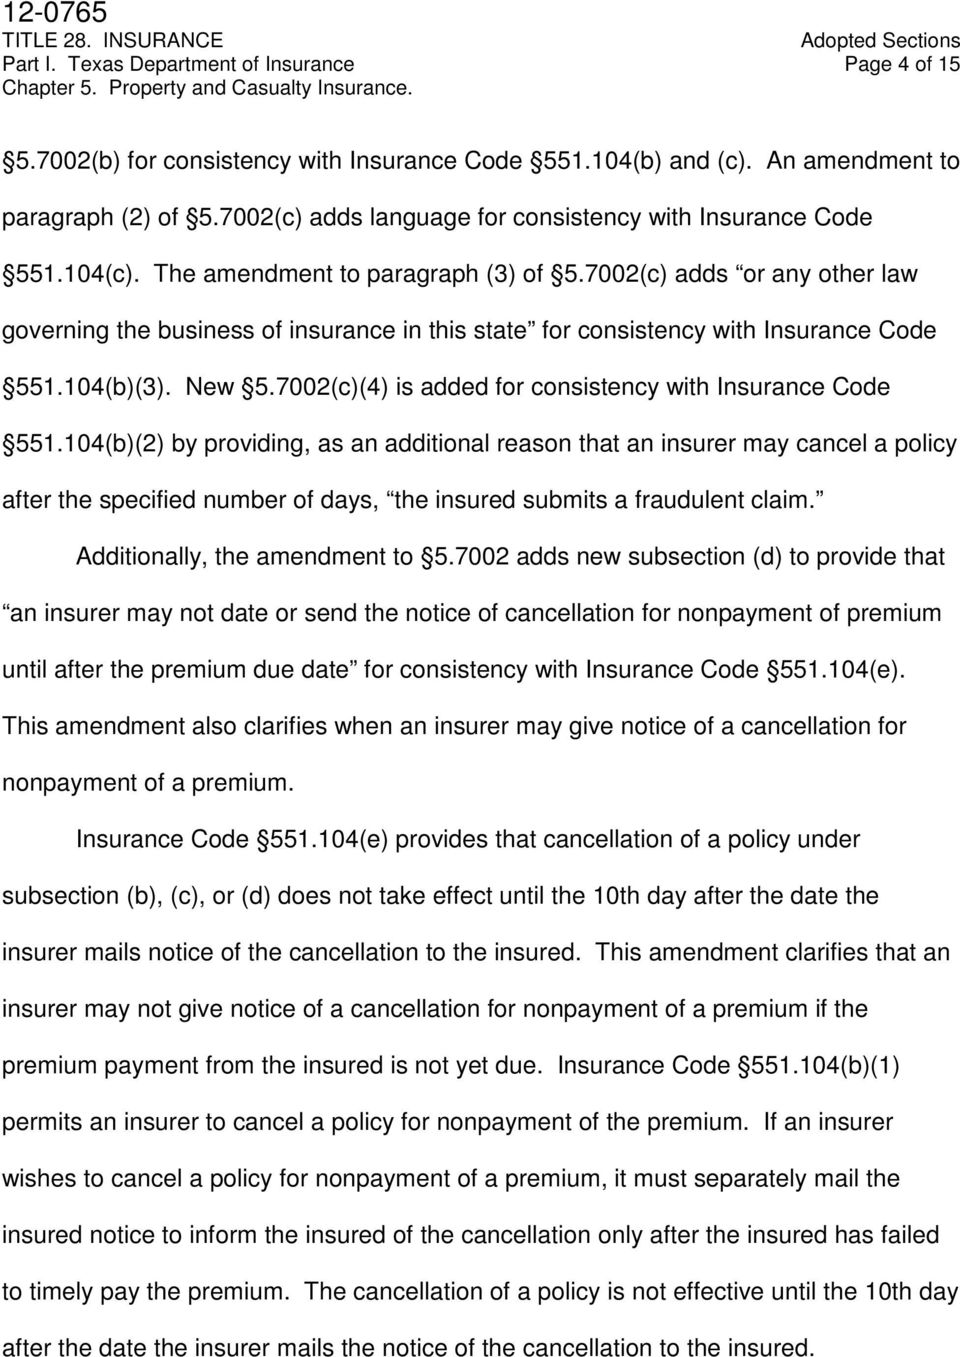 7002(c) adds or any other law governing the business of insurance in this state for consistency with Insurance Code 551.104(b)(3). New 5.7002(c)(4) is added for consistency with Insurance Code 551.